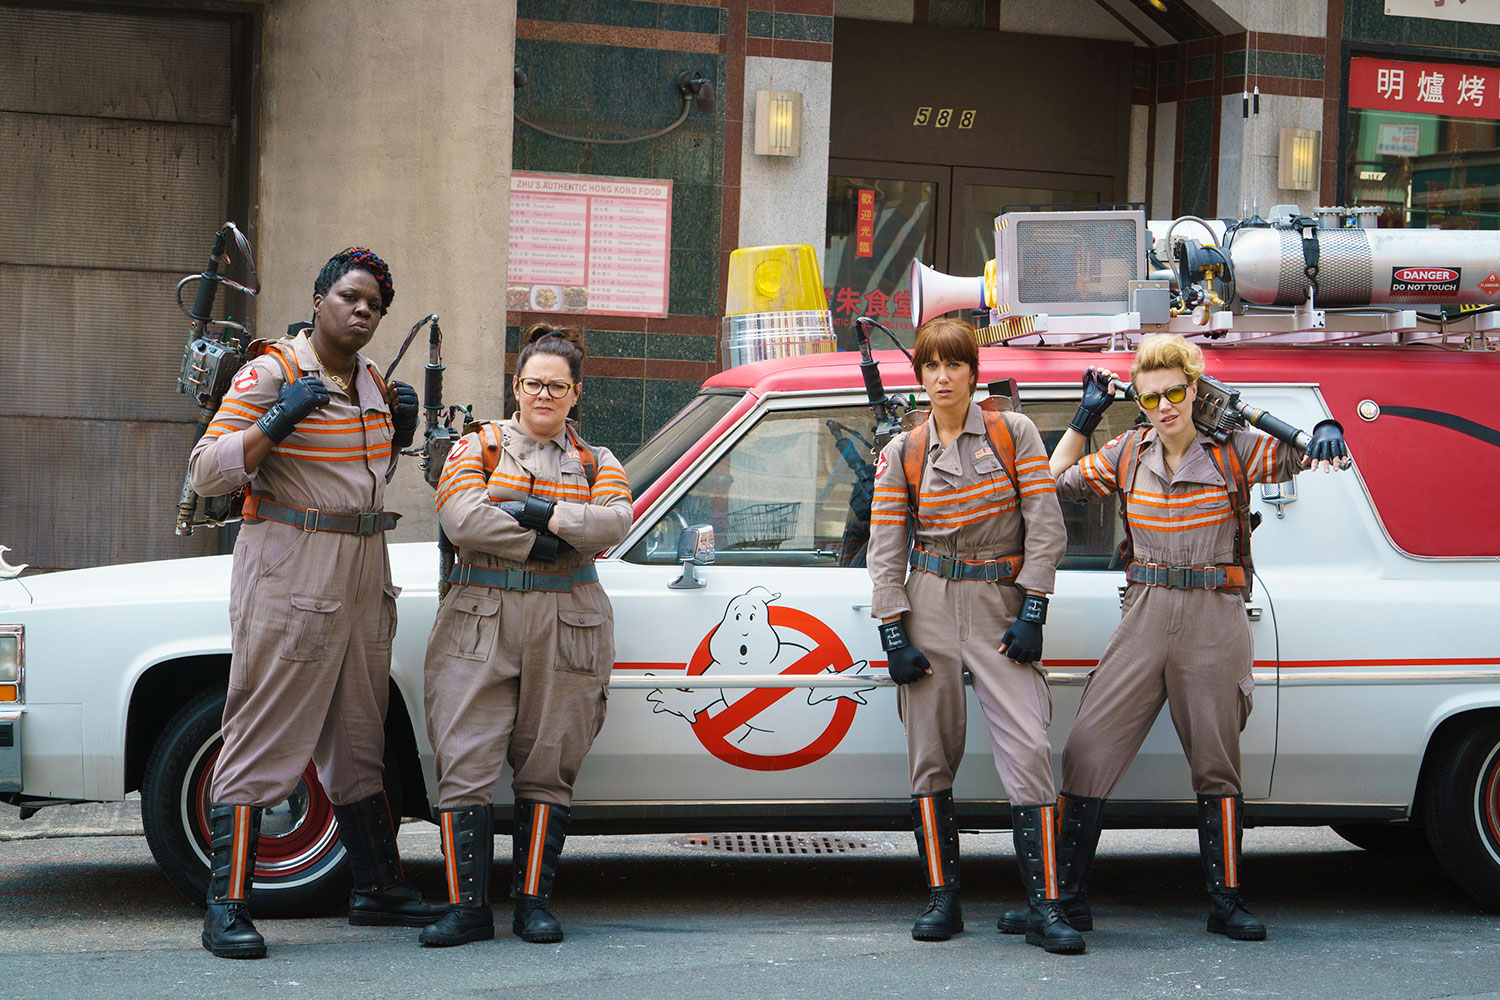 'Ghostbusters' Heading for $70M-Plus Loss, Sequel Unlikely